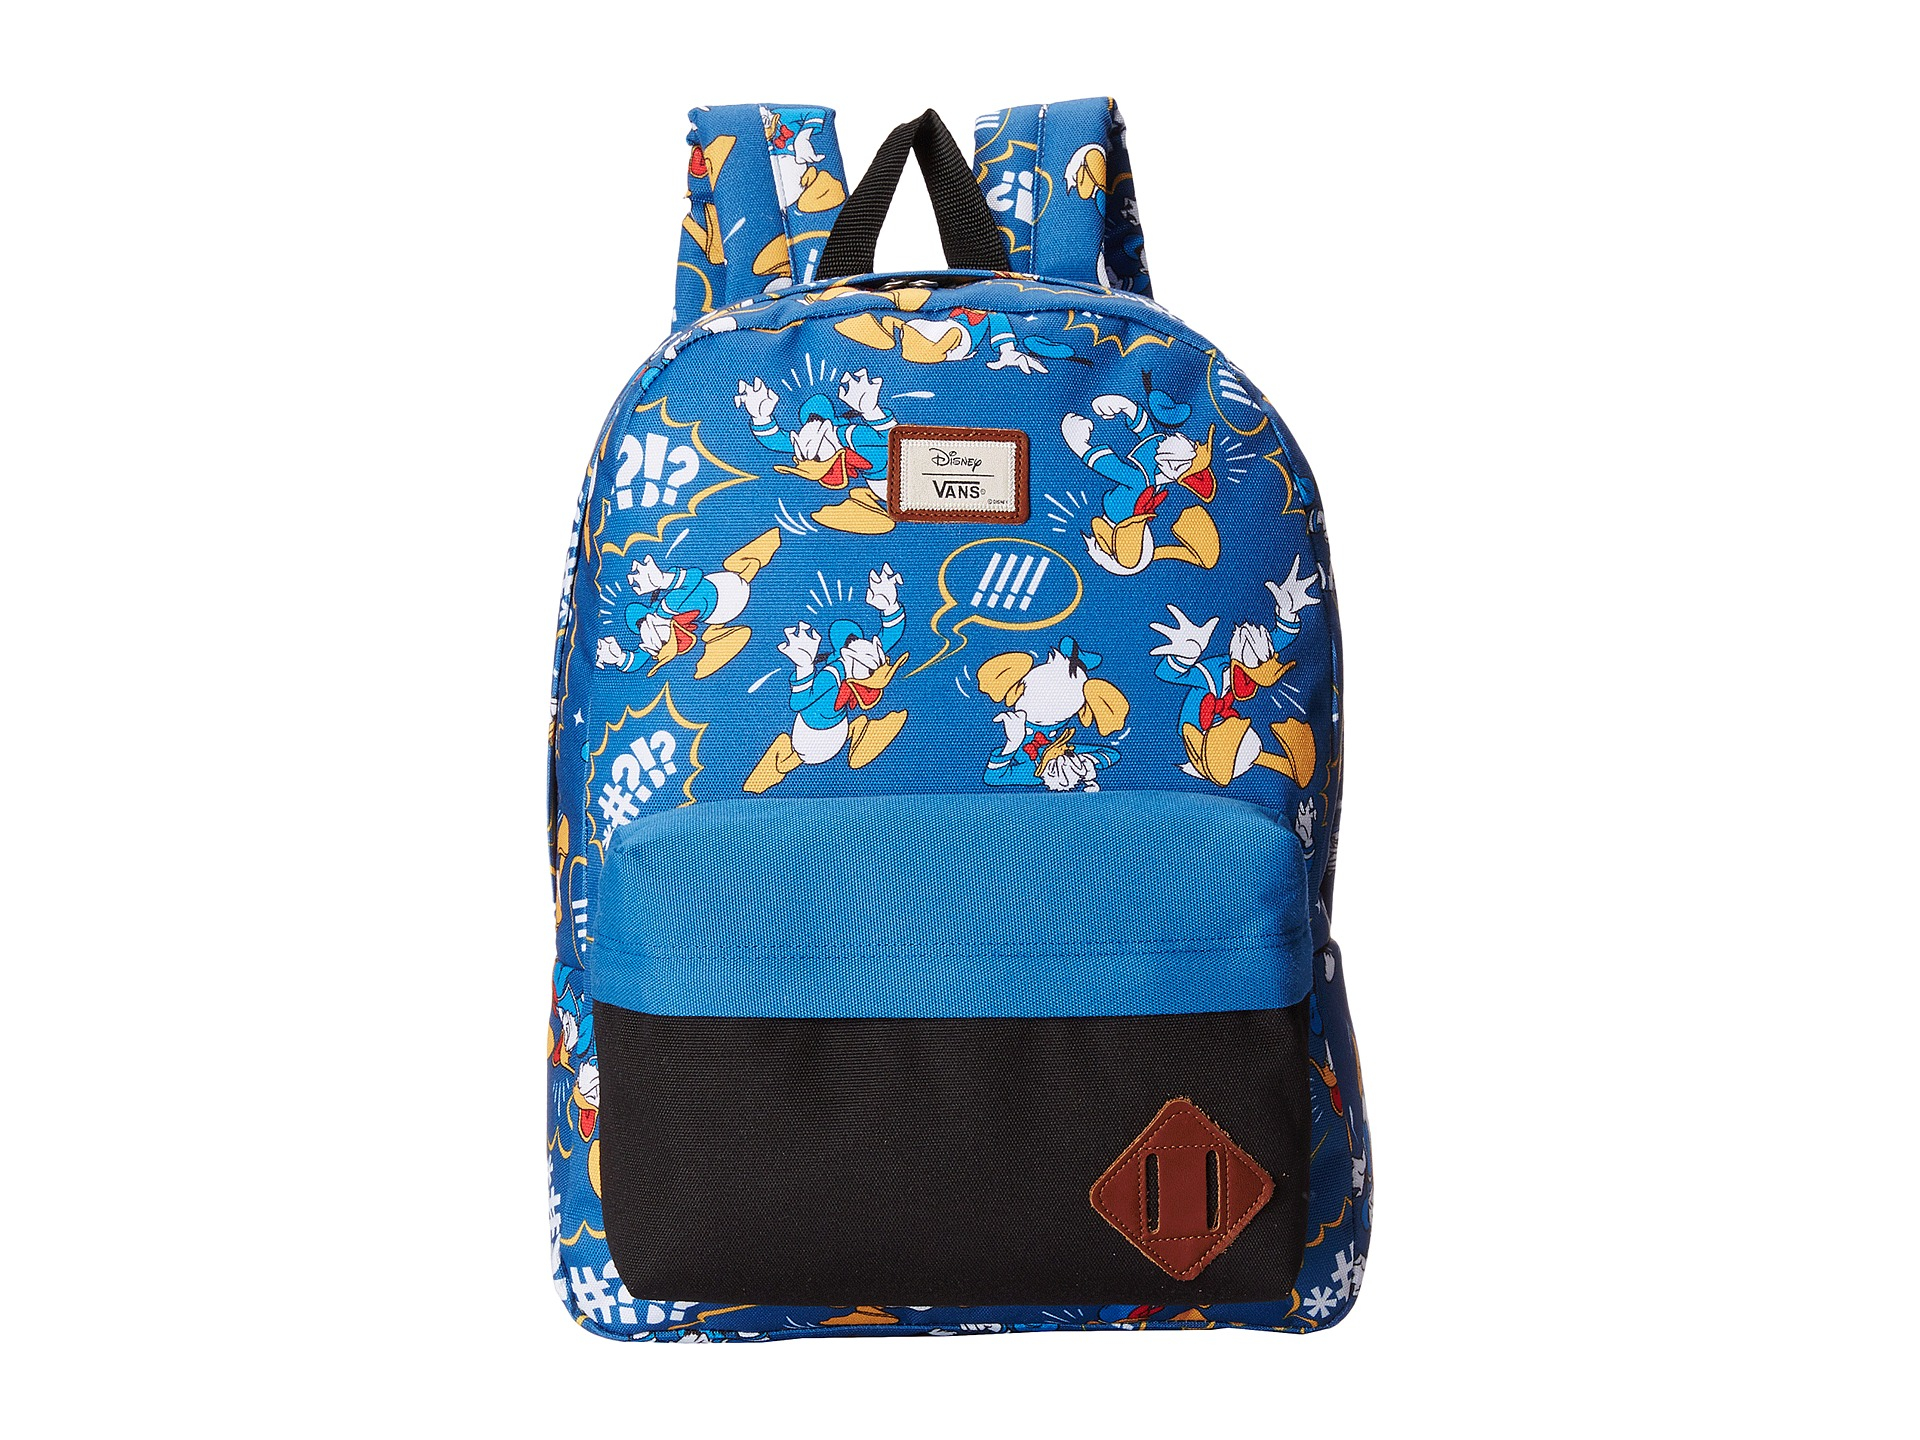 Lyst - Vans Disney® Old Skool Ii Backpack in Blue for Men b27a7a07f88a9